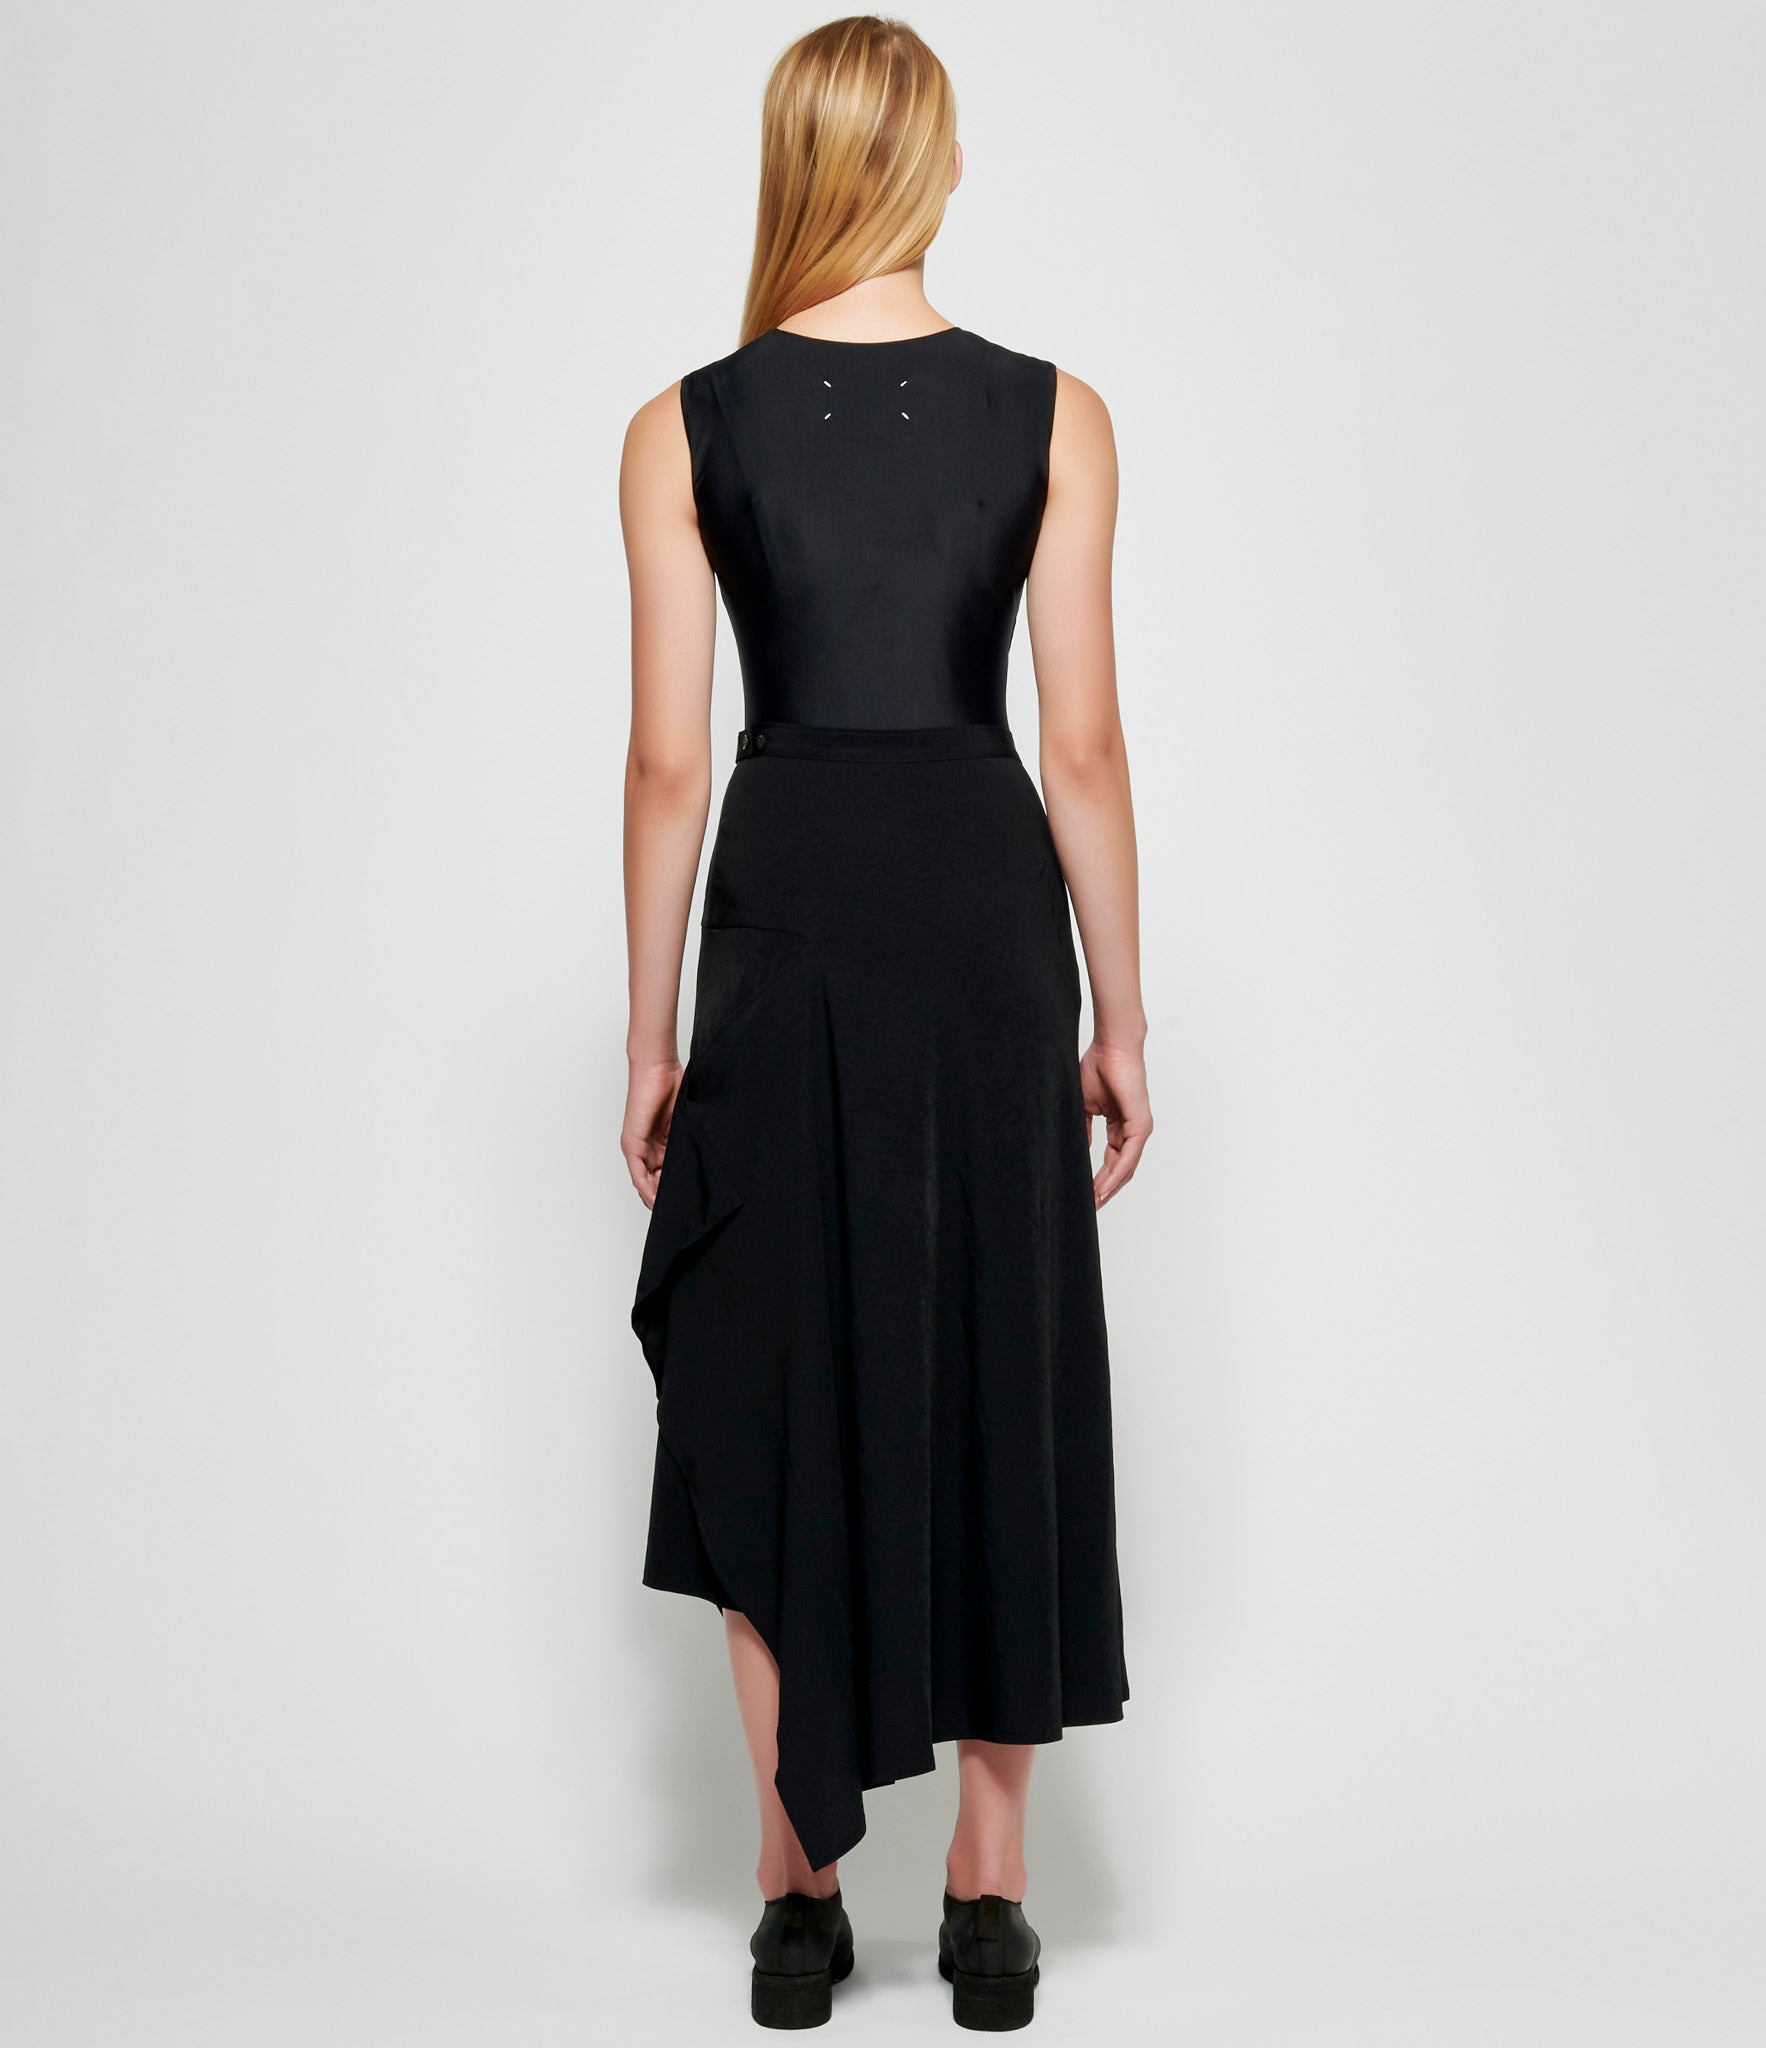 Yohji Yamamoto Left Side Deco Cloth Button Skirt